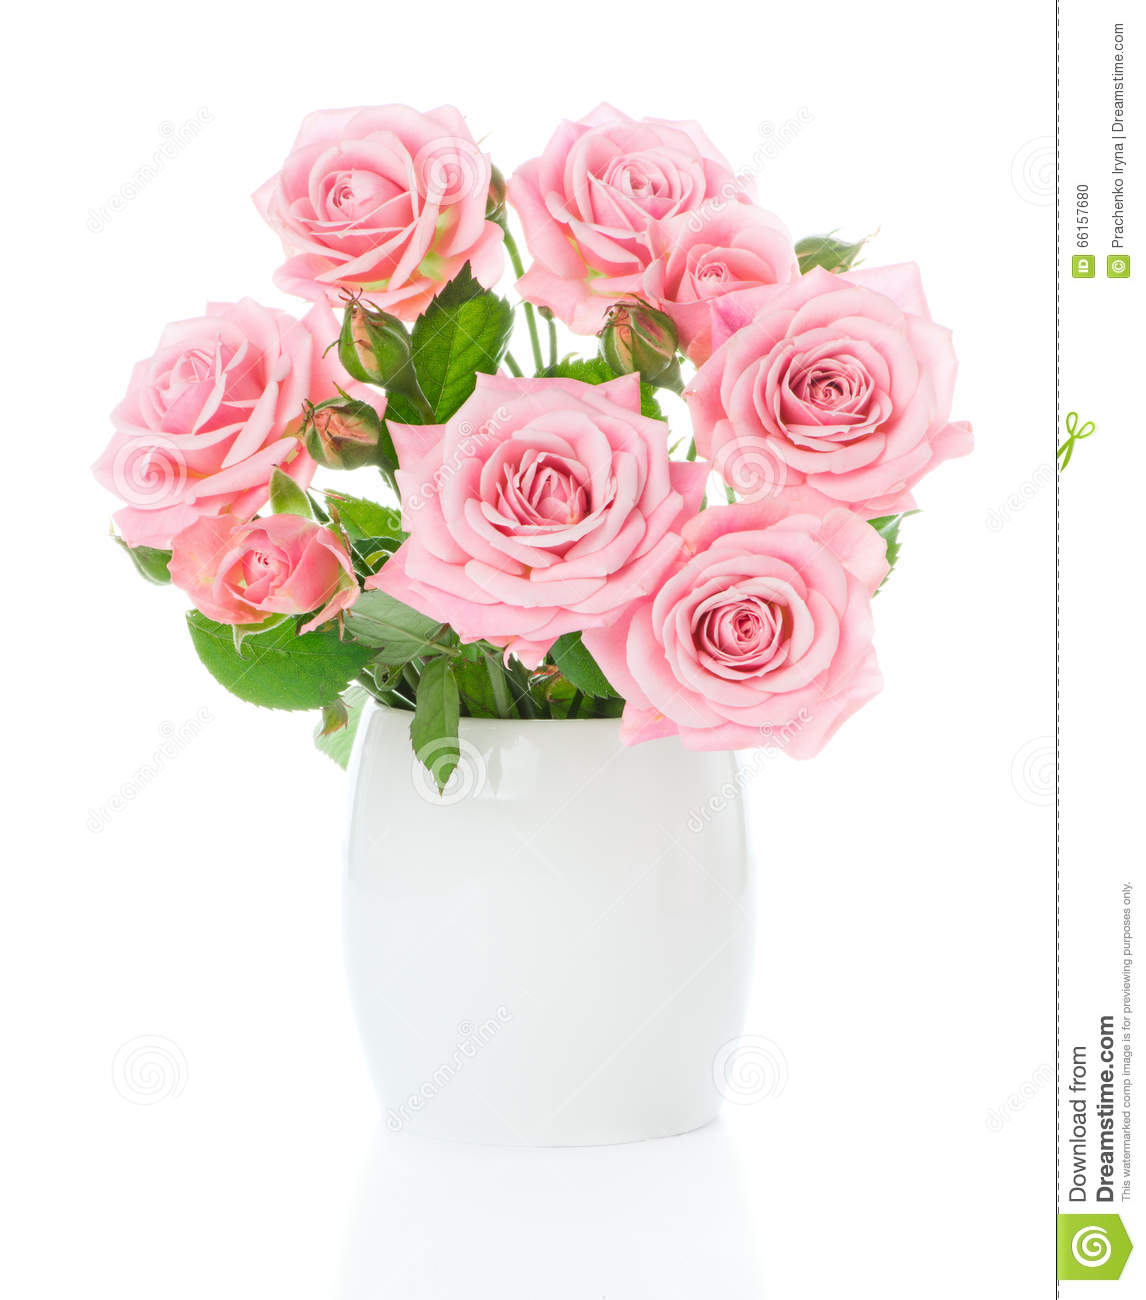 Beautiful Bouquet Of Fresh Pink Roses In A White Vase Stock Photo